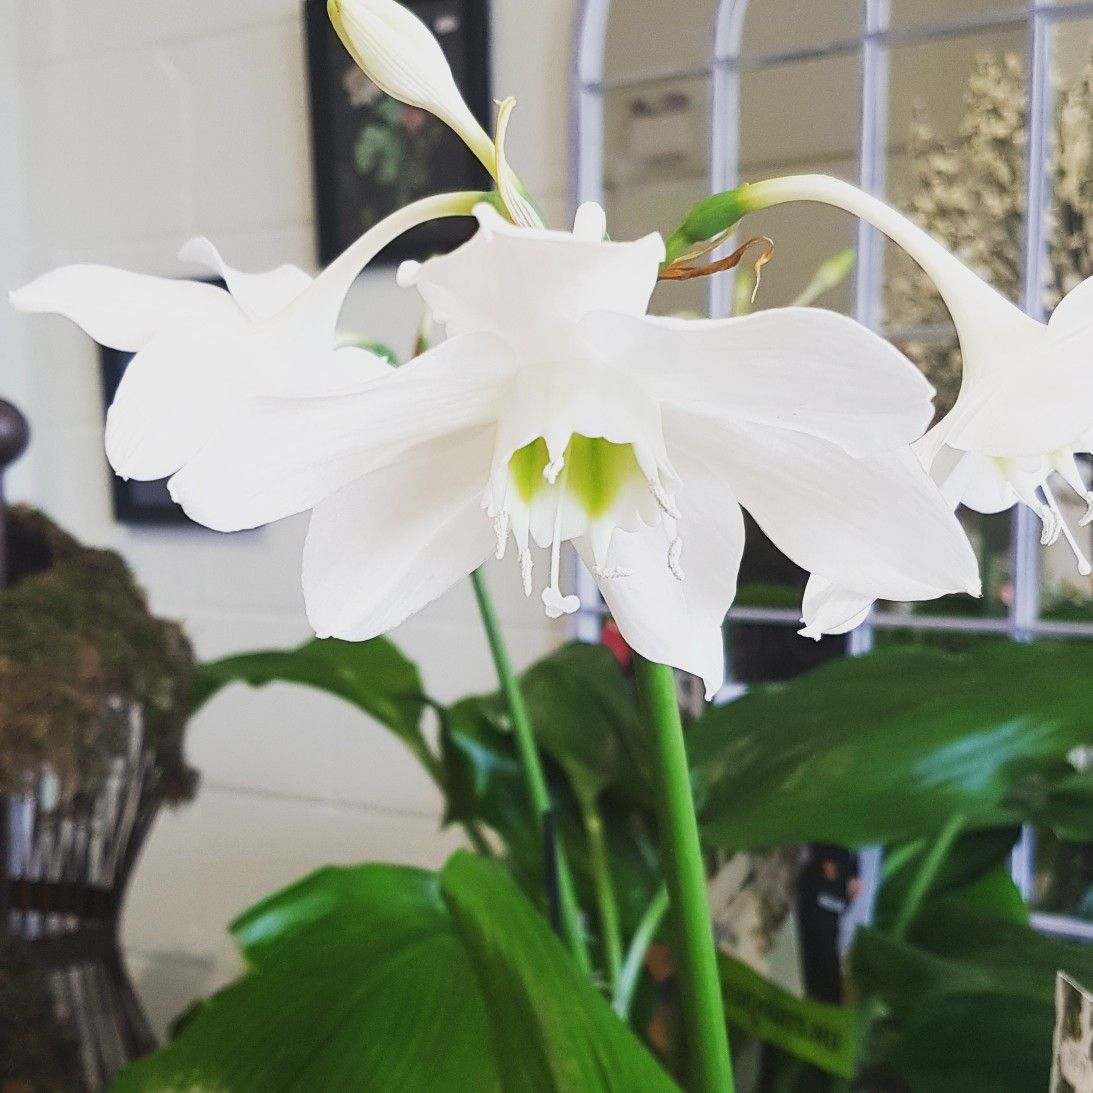 Plant Of The Month Is The Very Beautiful Eucharis Grandiflora Or